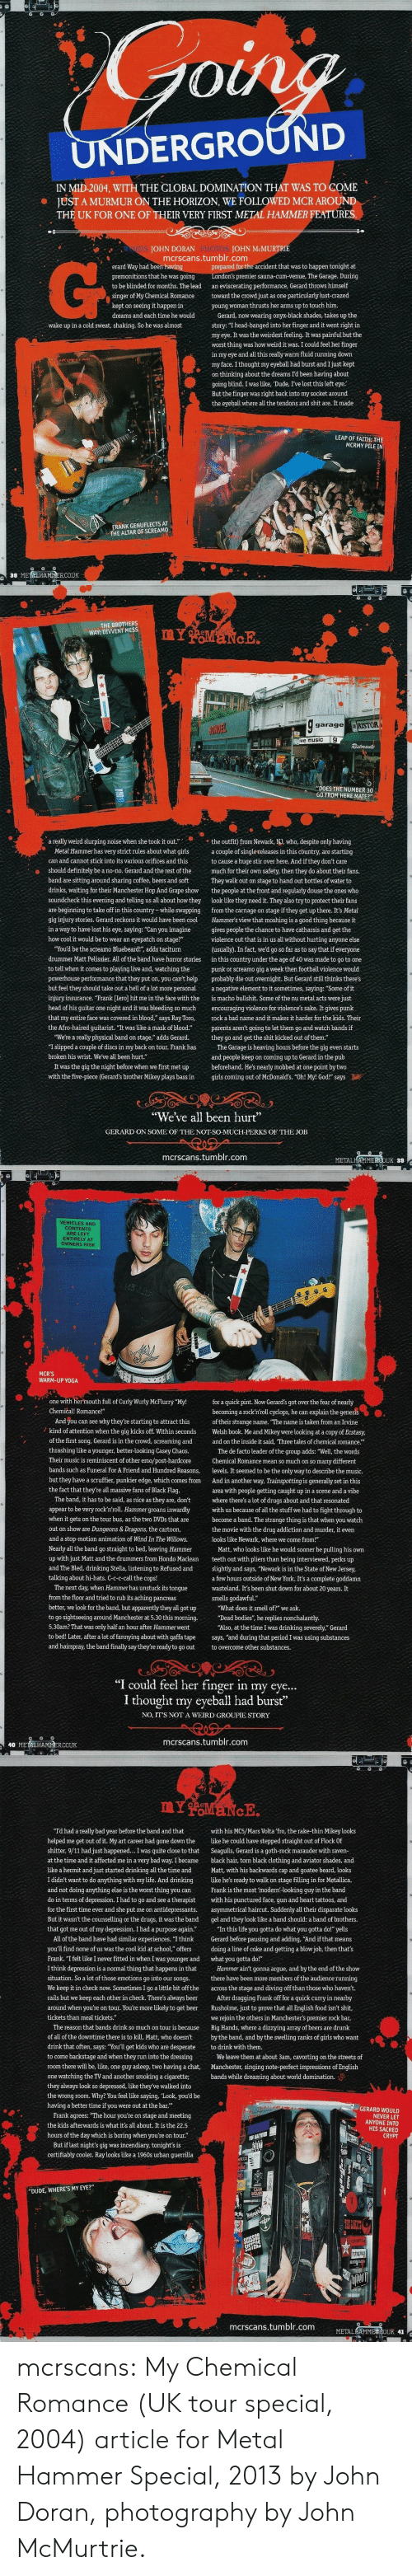 "9/11, Apparently, and Arguing: 0  IN MID-2004, WITH THE GLOBAL DOMINATION THAT WAS TO COME  JUST A MURMUR ON THE HORIZON, WE FOLLOWED MCR AROUND  THE UK FOR ONE OF THEIR VERY FIRST METAL HAMMER FEATURES  WORDS: JOHN DORAN PHOTOS: JOHN McMURTRIE  mcrscans.tumblr.com  G-  prepared for the accident that was to happen tonight at  premier sauna-cum-venue, The Garage. During  erard Way had been having  premonitions that he was going  to be blinded for months. The lead an eviscerating performance, Gerard throws himself  singer of My Chemical Romancetoward the crowd just as one particularly lust-crazed  kept on seeing it happen in  dreams and each time he would  young woman thrusts her arms up to touch him.  Gerard, now wearing onyx-black shades, takes up the  story: ""I head-banged into her finger and it went right in  my eye. It was the weirdest feeling. It was painful but the  worst thing was how weird it was. I could feel her finger  in my eye and all this really warm fluid running down  my face. I thought my eyeball had burst and I just kept  on thinking about the dreams I'd been having about  wake up in a cold sweat, shaking. So he was almost  going blind. I was like, 'Dude, I've lost this left eye:  But the finger was right back into my socket around  the eyeball where all the tendons and shit are. It made  LEAP OF FAITH: THE  MCRMY PILE IN  ANK GENUFLECTS AT  HE ALTAR OF SCREAM  38 METLHAMNERCOUK   THE BROTHERS  WAY: DIVVENT MESS  garage RISTOR  music  ""DOESTHE NUMBER 30  GO FROM HERE MATE?""  a really weird slurping noise when she took it out.the outfit) from Newark, NJ, who, despite only having  Metal Hammer has very strict rules about what girls acouple of single releases in this country, are starting  can and cannot stick into its various orifices and this  should definitely be a no-no. Gerard and the rest of themuch for their own safety, then they do about their fans.  band are sitting around sharing coffee, beers and soft They walk out on stage to hand out bottles of water to  drinks, waiting for their Manchester Hop And Grape show the people at the front and regularly douse the ones who  soundcheck this evening and telling us all about how they look like they need it. They also try to protect their fans  are beginning to take off in this country-while swapping from the carnage on stage if they get up there. It's Metal  gig injury stories. Gerard reckons it would have been cool Hammers view that moshing is a good thing because it  in a way to have lost his eye, saying: ""Can you imagine gives people the chance to have catharsis and get the  how cool it would be to wear an eyepatch on stage?""  to cause a huge stir over here. And if they don't care  violence out that is in us all without hurting anyone else  You'd be the screamo Bluebeard!"", adds taciturr  drummer Matt Pelissier. All of the band have horror stories in this country under the age of 40 was made to go to one  to tell when it comes to playing live and, watching thepunk or screamo gig a week then football violence would  powerhouse performance that they put on, you can't help probably die out overnight. But Gerard still thinks there's  but feel they should take out a hell of a lot more personal anegative element to it sometimes, saying: ""Some of it  injury insurance. ""Frank [Iero] hit me in the face with the is macho bullshit. Some of the nu metal acts were just  head of his guitar one night and it was bleeding so much encouraging violence for violence's sake. It gives punk  that my entire face was covered in blood,"" says Ray Toro, rck a bad name and it makes it harder for the kids. Their  the Afro-haired guitarist. ""It was like a mask of blood."" parents aren't going to let them go and watch bands if  (usually). In fact, we'd go so far as to say that if everyone  ""We're a really physical band on stage,"" adds Gerard.they go and get the shit kicked out of them.""  ""I slipped a couple of discs in my back on tour. Frank hasThe Garage is heaving hours before the gig even starts  broken his wrist. We've all been hurt.""  It was the gig the night before when we first met up  with the five-piece (Gerard's brother Mikey plays bass in  and people keep on coming up to Gerard in the pub  beforehand. He's nearly mobbed at one point by two  girls coming out of McDonald's. ""Oh! My! God!"" says  ""We've all been hurt  GERARD ON SOME OF THE NOT-SO-MUCH-PERKS OF THE JOB  mcrscans.tumblr.com  METALHAMMERCOUK 39   VEHICLES AND  CONTENTS  ARE LEFT  ENTIRELY AT  OWNERS RISK  MCR'S  WARM-UP YOGA  one with hermouth full of Curly Wurly McFlurry ""My!  Chemical! Romance!  for a quick pint. Now Gerard's got over the fear of nearly  becoming a rocknrolcyclops, he can explain the genesis.  And you can see why they're starting to attract this  of their strange name. ""The name is taken from an Irvine  kind of attention when the gig kicks off. Within seconds Welsh book. Me and Mikey were looking at a copy of Ecstasy,  of the first song, Gerard is in the crowd, screaming and  thrashing like a younger, better-looking Casey Chaos.  Their music is reminiscent of other emo/post-hardcoreChemical Romance mean so much on so many different  bands such as Funeral For A Friend and Hundred Reasons, levels. It seemed to be the only way to describe the music.  but they have a scruffier, punkier edge, which comes fromAnd in another way, Trainspotting is generally set in this  the fact that they're all massive fans of Black Flag.  and on the inside it said, Three tales of chemical romance.""  The de facto leader of the group adds: ""Well, the words  area with people getting caught up in a scene and a vibe  The band, it has to be said, as nice as they are, don't  appear to be very rock'n'roll. Hammer groans inwardly  when it gets on the tour bus, as the two DVDs that are  out on show are Dungeons & Dragons, the cartoon,  and a stop-motion animation of Wind In The Willows.  Nearly all the band go straight to bed, leaving Hammer Matt, who looks like he would sooner be pulling his own  up with just Matt and the drummers from Hondo Macleanteeth out with pliers than being interviewed, perks up  and The Bled, drinking Stella, listening to Refused and slightly and says, ""Newark is in the State of New Jersey,  talking about hi-hats. C-c-c-call the cops!  where there's a lot of drugs about and that resonated  with us because of all the stuff we had to fight through to  become a band. The strange thing is that when you watch  the movie with the drug addiction and murder, it evern  looks like Newark, where we come from!""  a few hours outside of New York. It's a complete goddamn  The next day, when Hammer has unstuck its tonguewasteland. It's been shut down for about 20 years. It  from the floor and tried to rub its aching pancreas  better, we look for the band, but apparently they all got up What does it smell of?"" we ask.  to go sightseeing around Manchester at 5.30 this morning. ""Dead bodies"", he replies nonchalantly.  5.30am? That was only half an hour after Hammer went  to bed! Later, after a lot of fannying about with gaffa tape says, ""and during that period I was using substances  and hairspray, the band finally say theyre ready to go out to overcome other substances.  smells godawful.""  ""Also, at the time I was drinking severely,"" Gerard  ""I could feel her finger in my eye...  I thought my eyeball had burst""  NO, ITS NOT A WEIRD GROUPIE STORY  mcrscans.tumblr.com  40 METRIHAMMERCOUK   ""Id had a really bad year before the band and that  helped me get out of it. My art career had gone down the like he could have stepped straight out of Flock Of  shitter, 9/11 had just happened. I was quite close to that Seagulls, Gerard is a goth-rock marauder with raven-  at the time and it affected me in a very bad way. I became black hair, torn black clothing and aviator shades, and  like a hermit and just started drinking all the time and Matt, with his backwards cap and goatee beard, looks  I didn't want to do anything with my life. And drinking like he's ready to walk on stage filling in for Metallica.  and not doing anything else is the worst thing you can Frank is the most 'modern-looking guy in the band  do in terms of depression. I had to go and see a therapist with his punctured face, gun and heart tattoos, and  for the first time ever and she put me on antidepressants. asymmetrical haircut. Suddenly all their disparate looks  But it wasn'tthe counselling or the drugs, it was the band gel and they look like a band should: a band of brothers.  that got me out of my depression. I had a purpose again."" ""In this life you gotta do what you gotta do!"" yells  with his MC5/Mars Volta 'fro, the rake-thin Mikey looks  All of the band have had similar experiences. ""I think Gerard before pausing and adding, ""And if that means  you'll find none of us was the cool kid at school,"" offers doing a line of coke and getting a blow job, then that's  Frank. ""I felt like I never fitted in when I was younger and what you gotta do!""  I think depression is a normal thing that happens in thatHammer ain't gonna argue, and by the end of the show  situation. So a lot of those emotions go into our songs. there have been more members of the audience running  We keep it in check now. Sometimes I go a little bit off the across the stage and diving off than those who haven't.  rails but we keep each other in check. There's always beer After dragging Frank off for a quick curry in nearby  around when you're on tour. You're more likely to get beer Rusholme, just to prove that all English food isn't shit,  tickets than meal tickets.""  we rejoin the others in Manchester's premier rock bar,  The reason that bands drink so much on tour is because Big Hands, where a dizzying array of beers are drunk  of all of the downtime there is to kil. Matt, who doesnt by the band, and by the swelling ranks of girls who want  drink that often, says: You'll get kids who are desperate to drink with them.  to come backstage and when they run into the dressingWe leave them at about 3am, cavorting on the streets of  room there will be, like, one guy asleep, two having a chat, Manchester, singing note-perfect impressions of English  one watching the TV and another smoking a cigarettebands while dreaming about world domination.  they always look so depressed, like they've walked into  the wrong room. Why? You feel like saying, Look, you'd be  having a better time if you were out at the bar.""  Frank agrees: The hour you're on stage and meeting  the kids afterwards is what it's all about. It is the 22.5  GERARD WOULD  NEVER LET  ANYONE INTO  HIS SACRED  CRYPT  hours of the day which is boring when you're on tour.""  But if last night's gig was incendiary, tonight's is  certifiably cooler. Ray looks like a 1960s urban guerrilla  If  'DUDE, WHERE'S MY EYE?""  mcrscans.tumblr.com  METALHAMM  ERCOUK 41 mcrscans:  My Chemical Romance (UK tour special, 2004) article for Metal Hammer Special, 2013 by John Doran, photography by John McMurtrie."